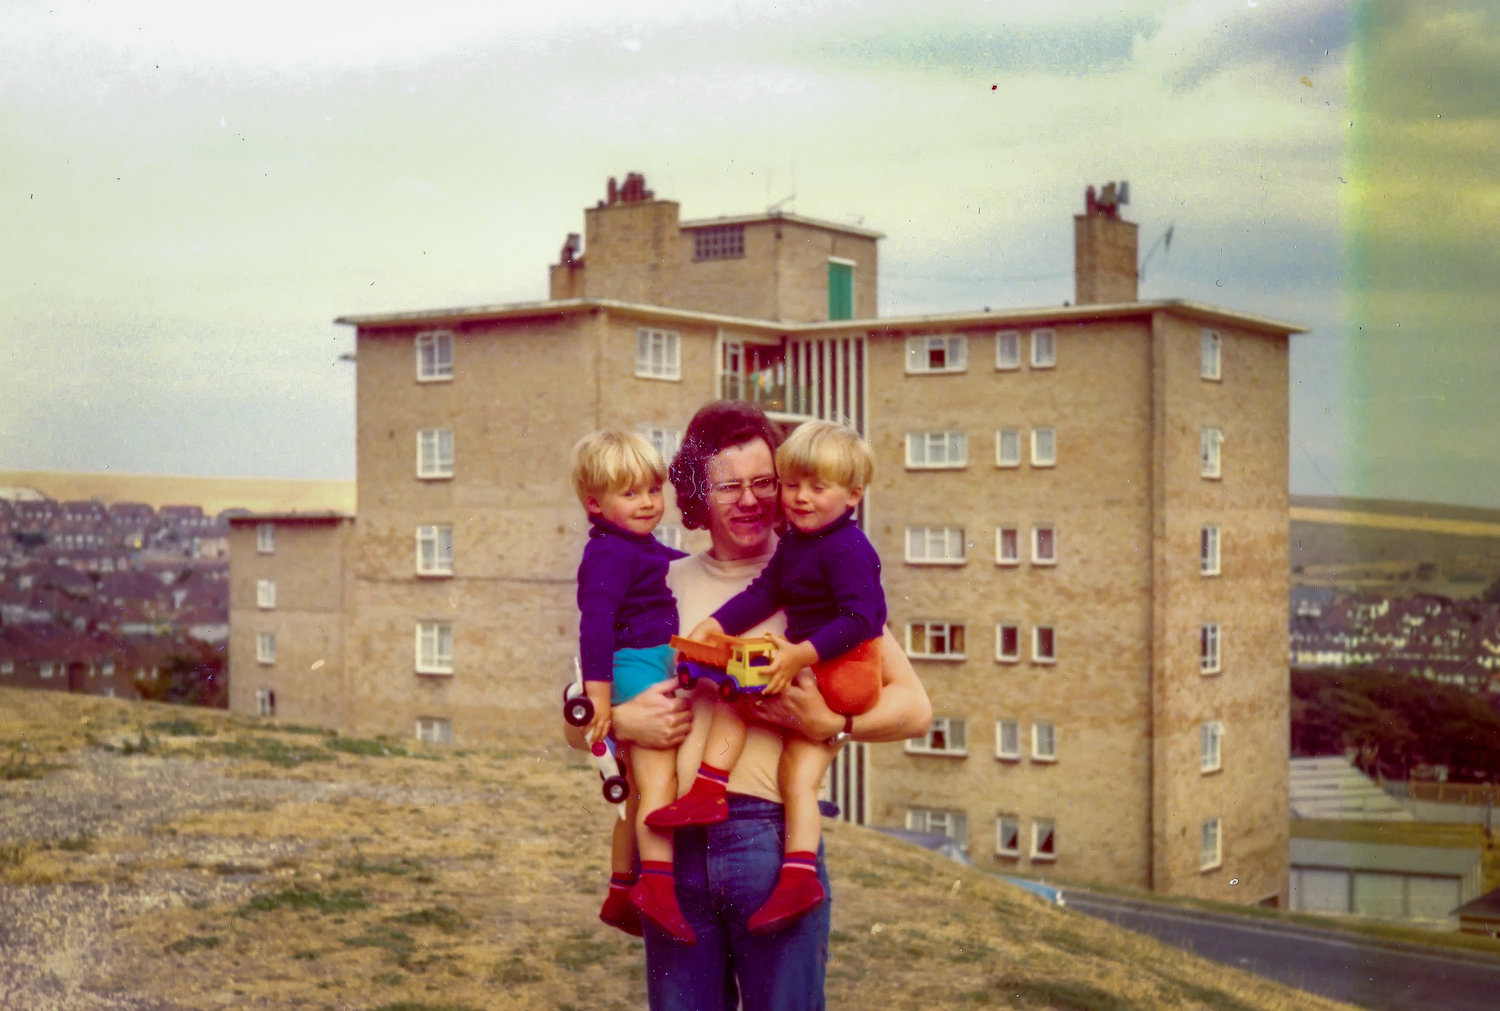 Me, my twin and dad on the Bristol Estate around 1979